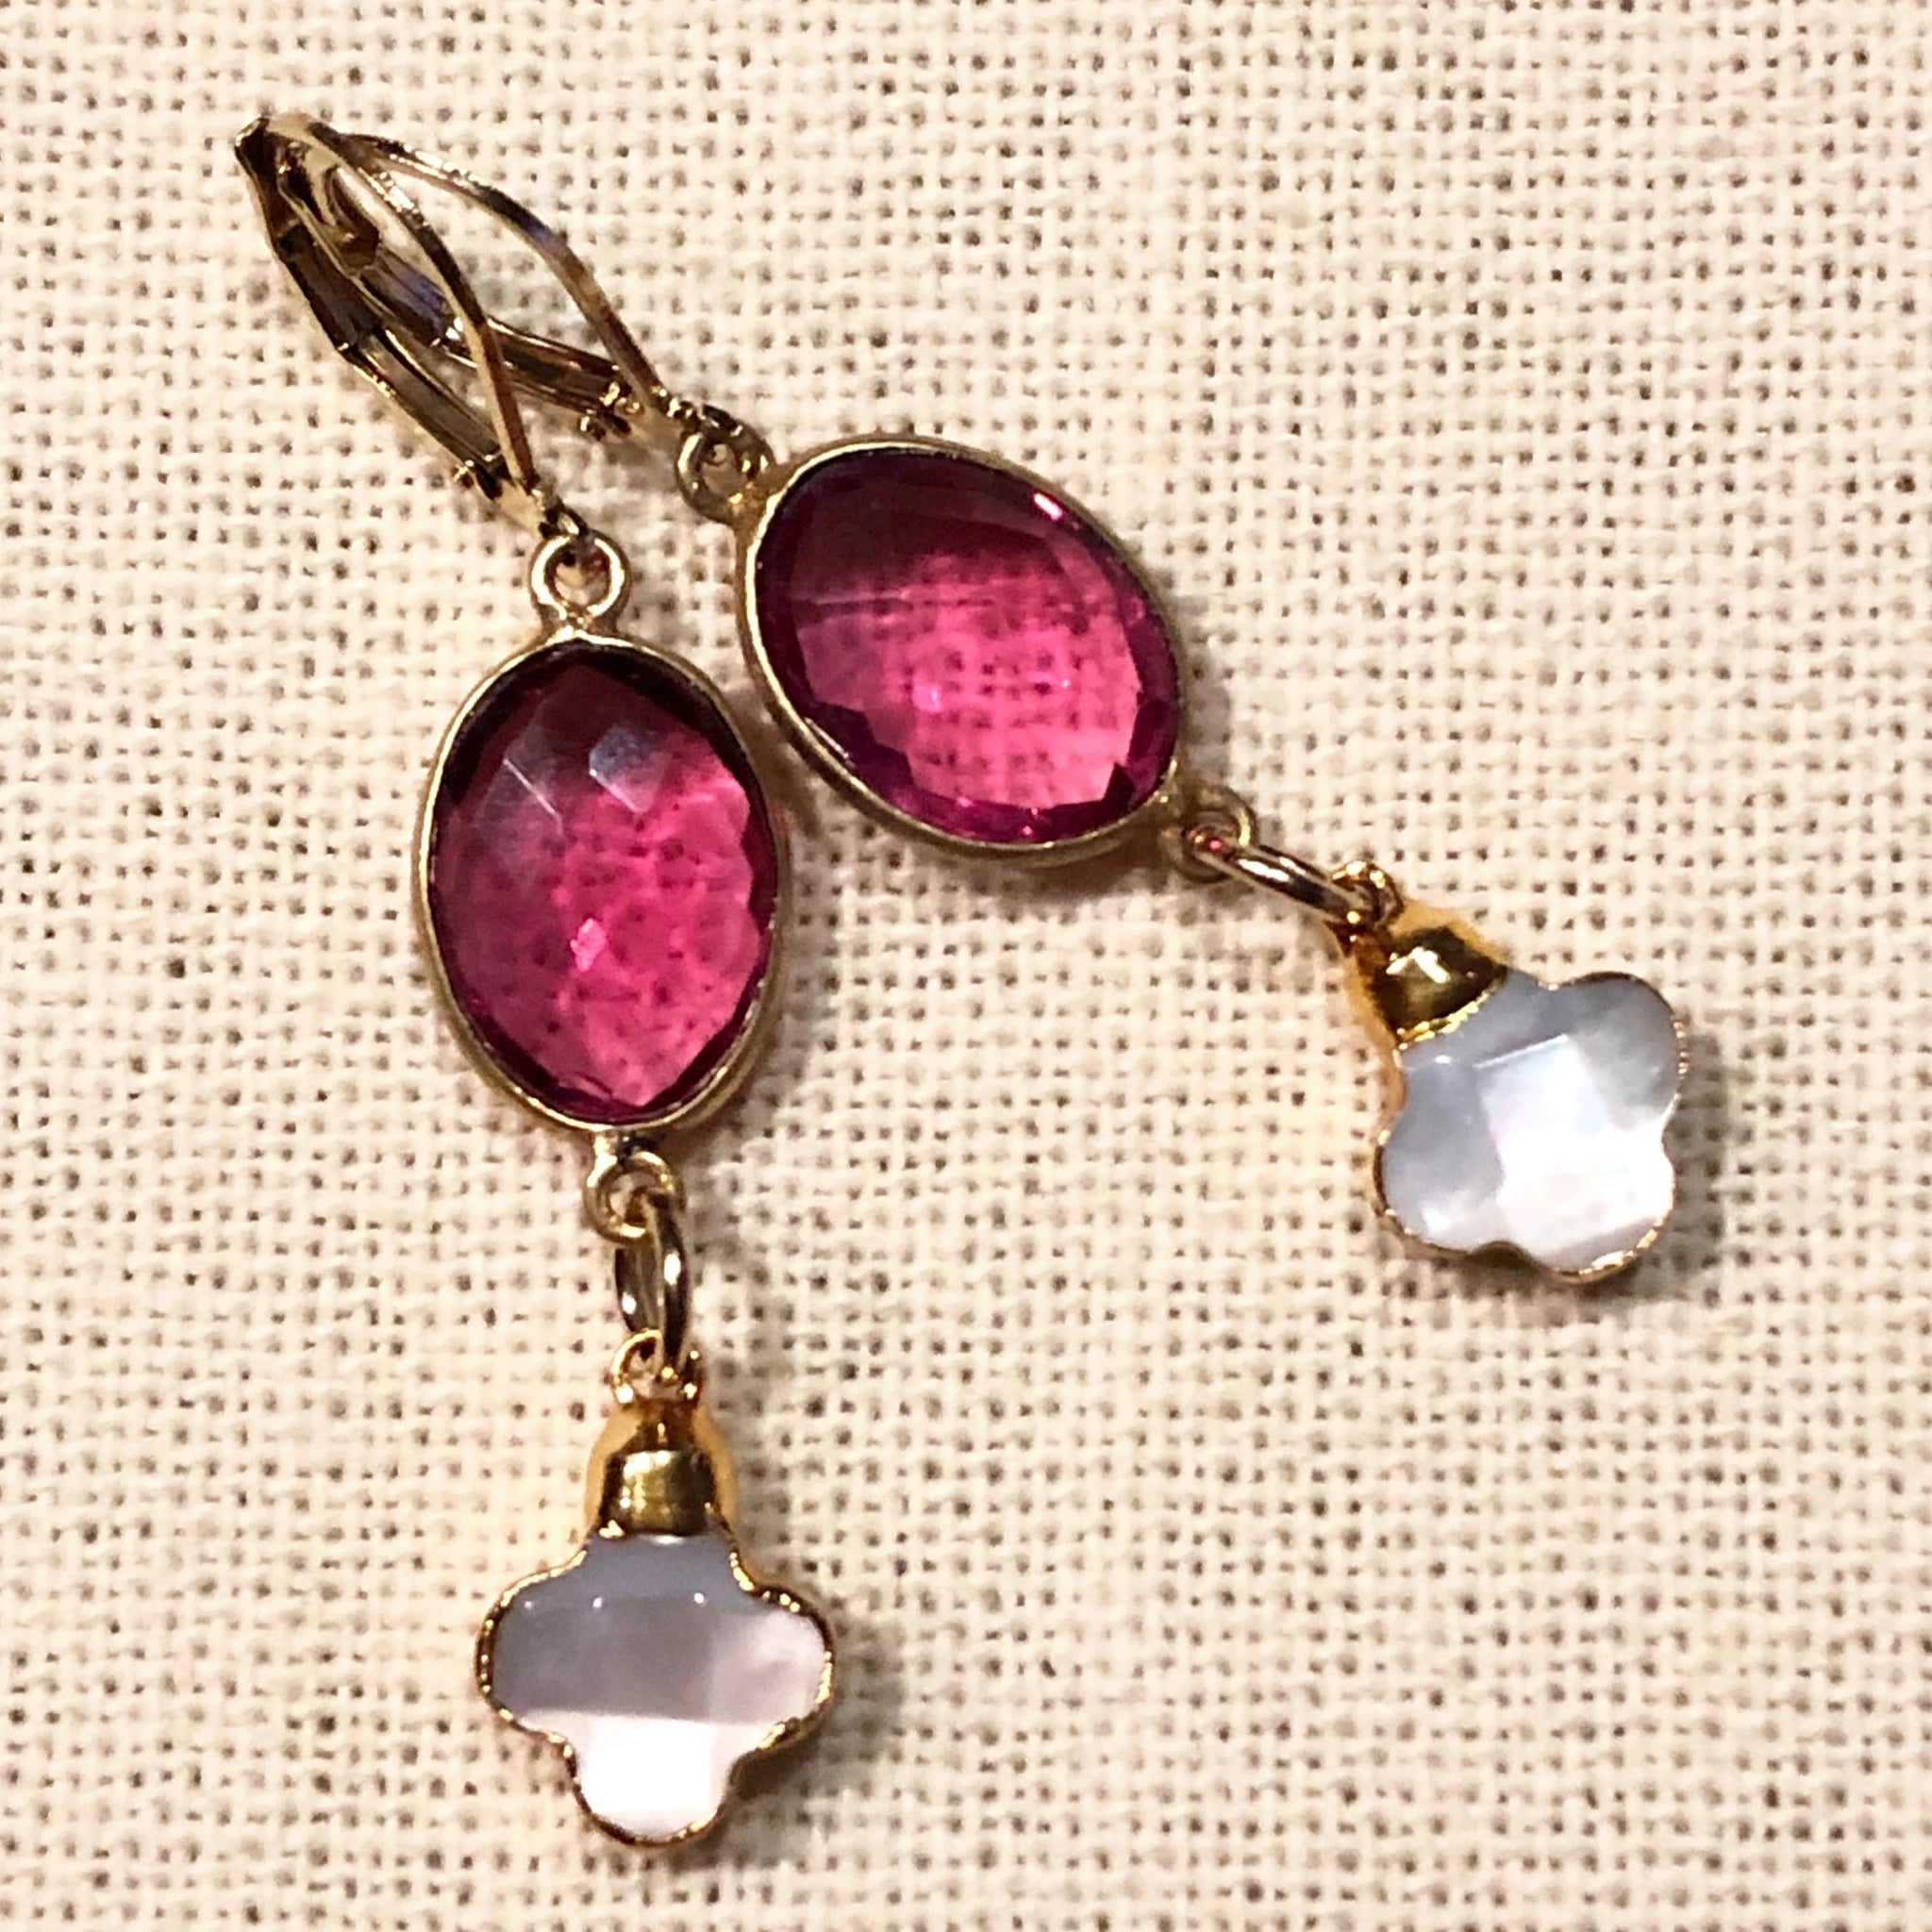 Fuchsia Hydro Quartz and Mother of Pearl Clover Gold Earrings by Sage Machado - The Sage Lifestyle